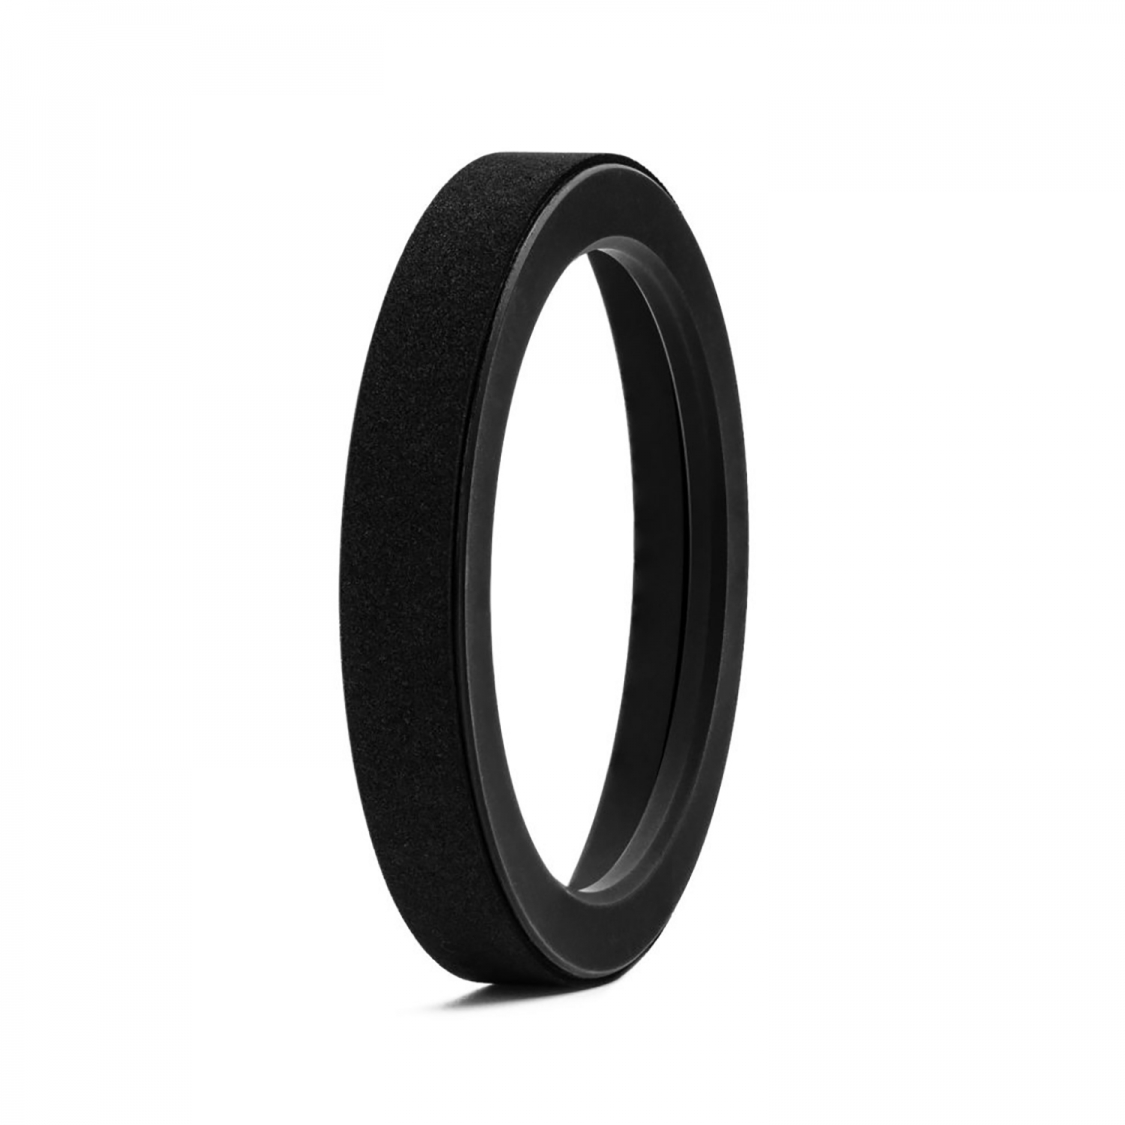 NiSi 77mm Filter Adapter Ring for S5 (Sigma 14-24mm f/2.8 DG Art Series - Canon and Nikon Mount)